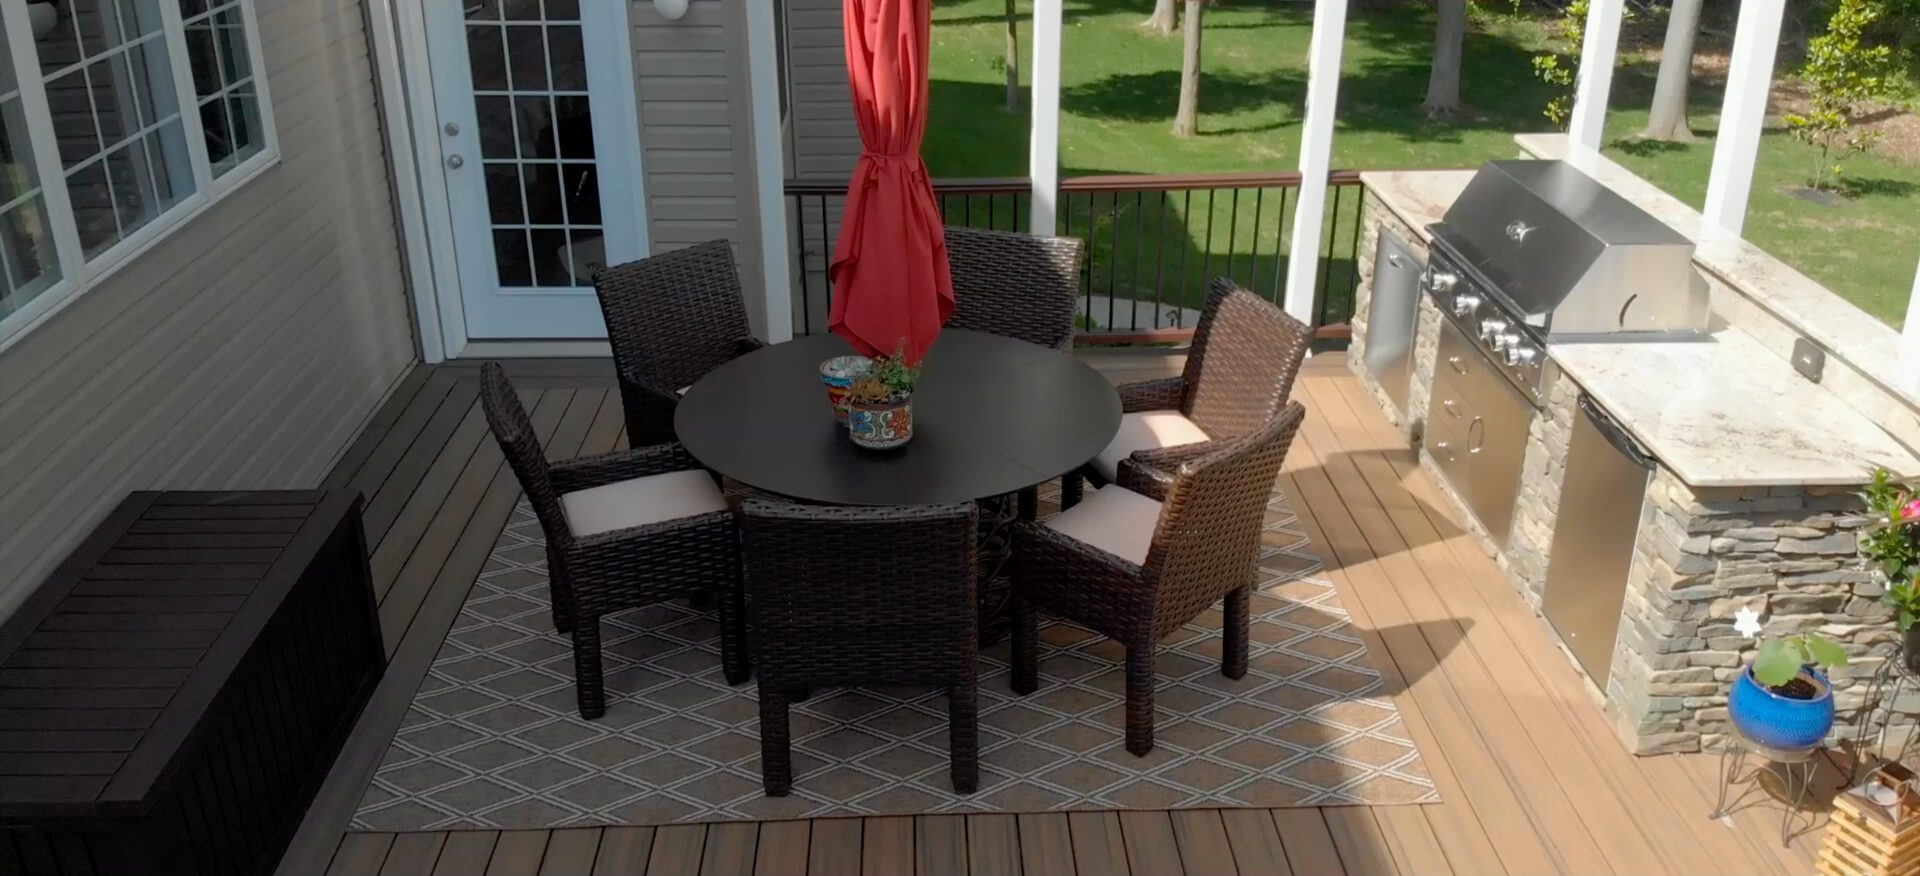 The wickery patio furniture new jersey toms river ocean county bayville outdoor furniture the wickery